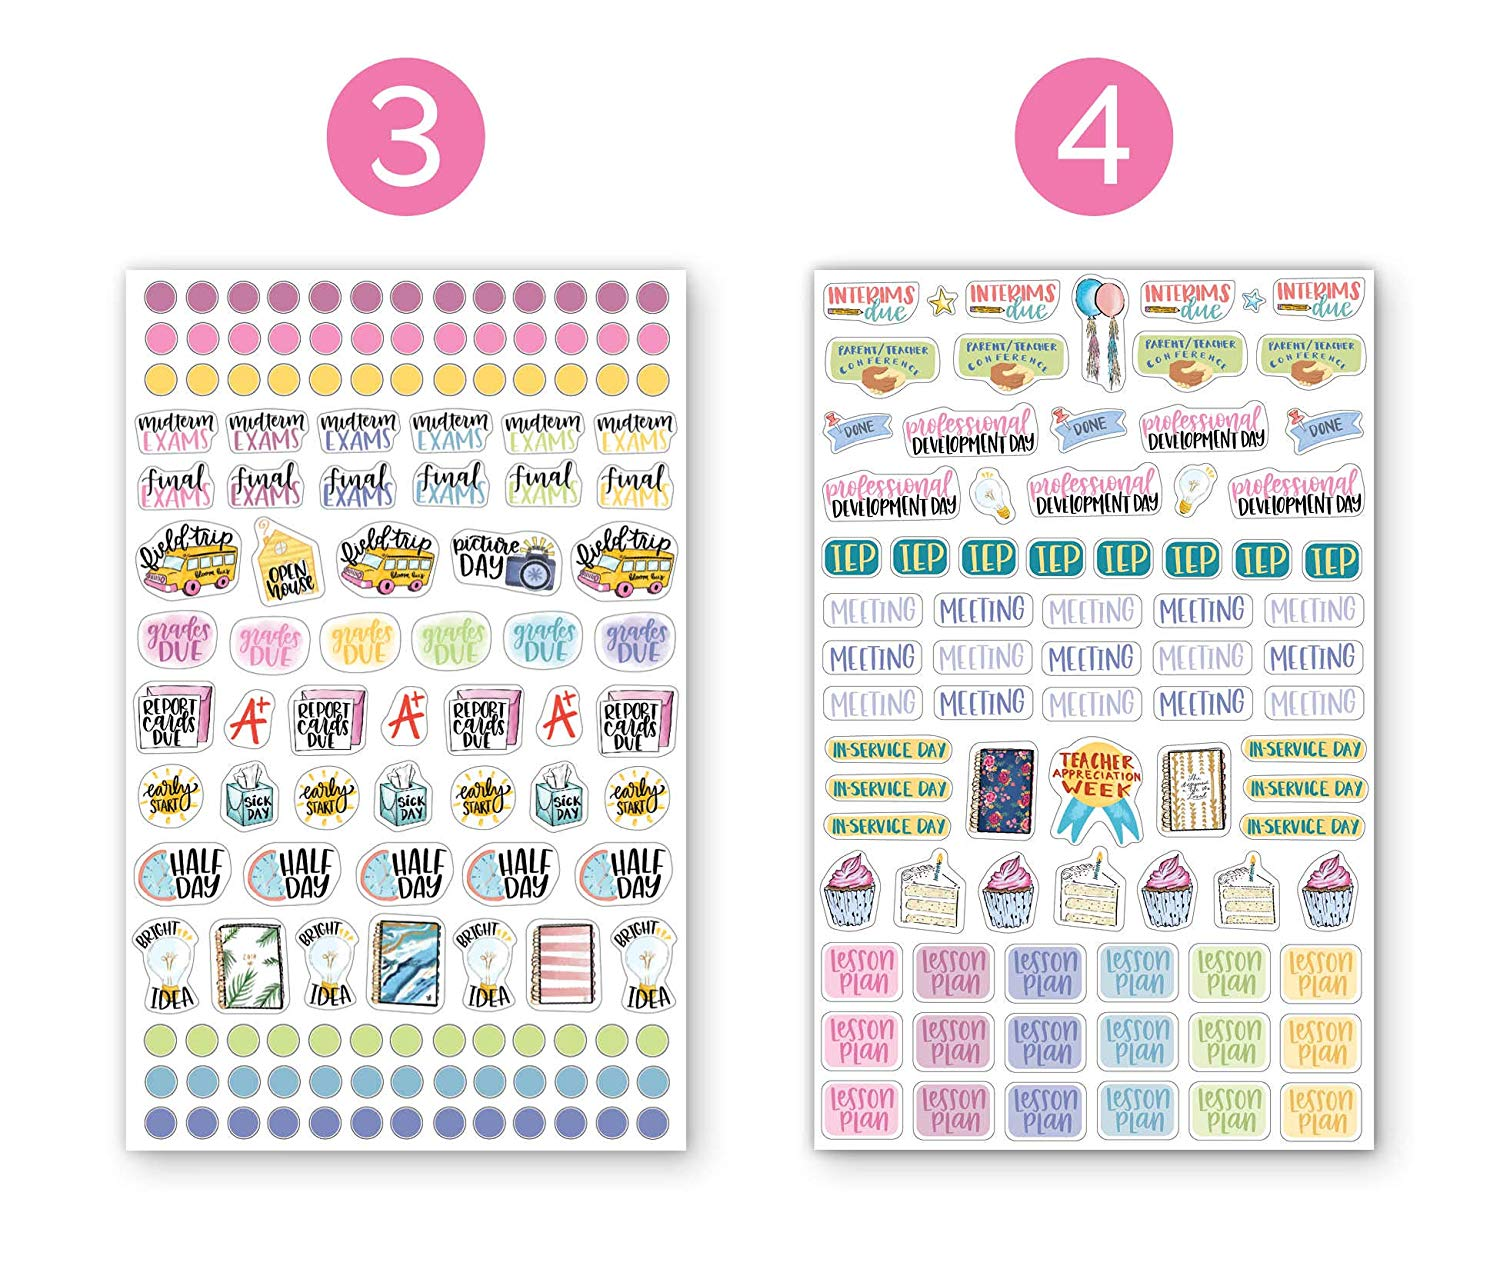 Daily Planner Stickers Calendars Stickers for Daily Planner, Agenda or Notebook